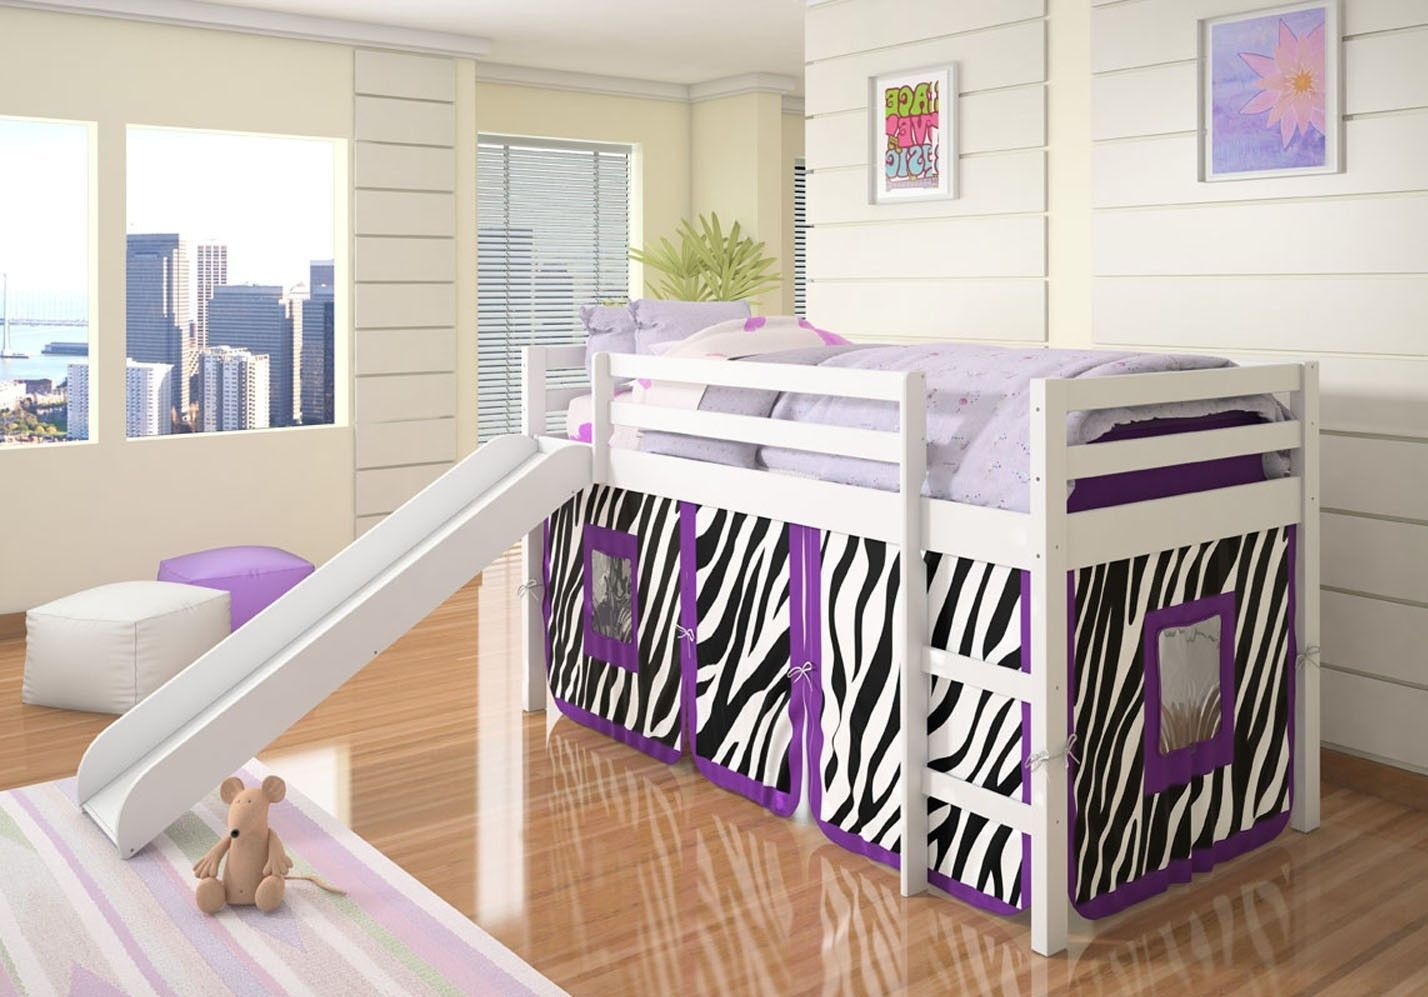 Slide for loft bed  Alexis White Loft Bed with Slide and Purple Zebra Tent